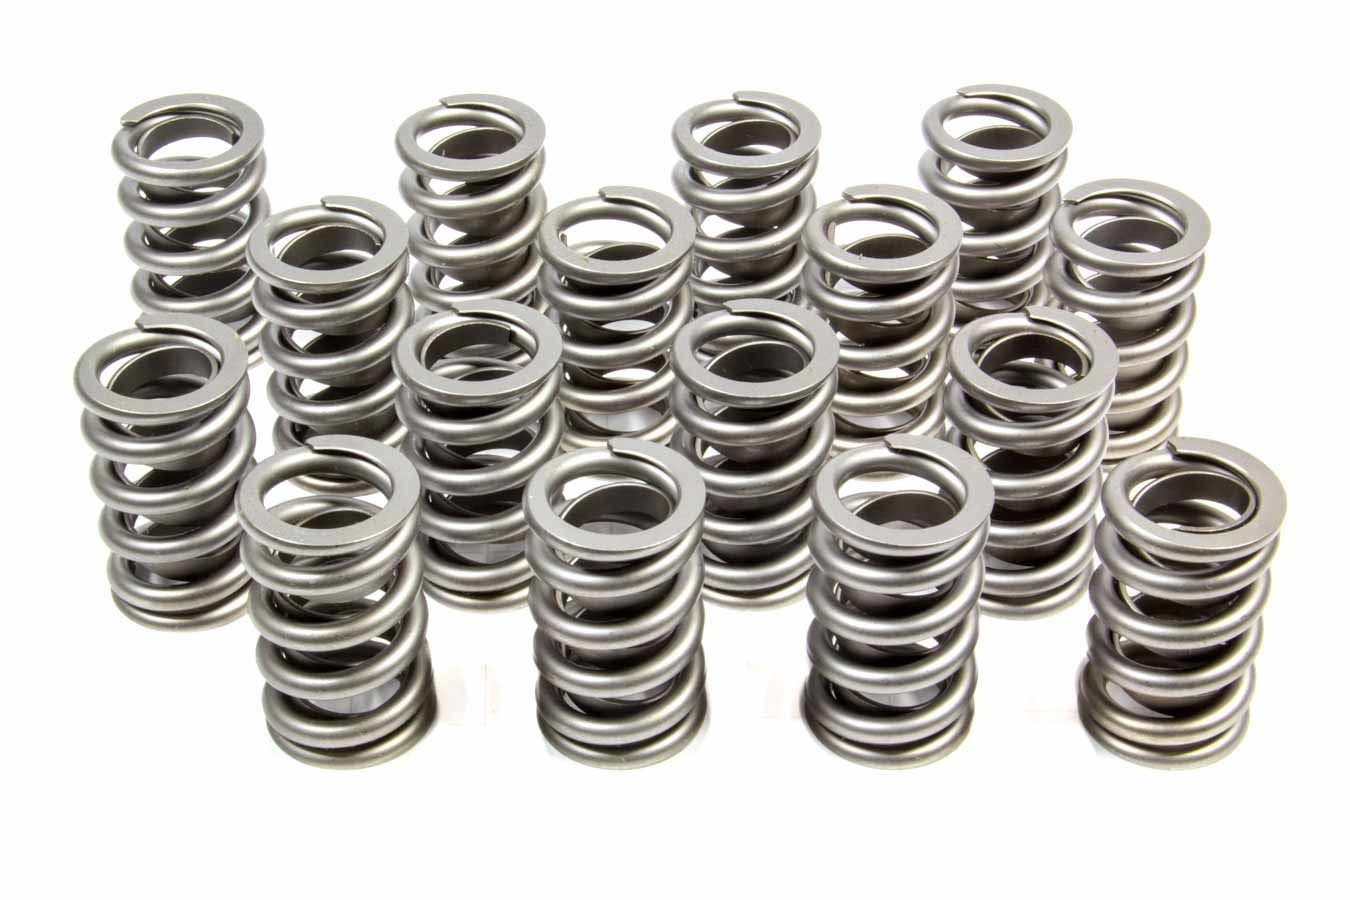 PAC Racing Springs PAC-1201X Valve Spring, RPM Series, Single Spring / Damper, 540 lb/in Spring Rate, 1.115 in Coil Bind, 1.260 in OD, Set of 16